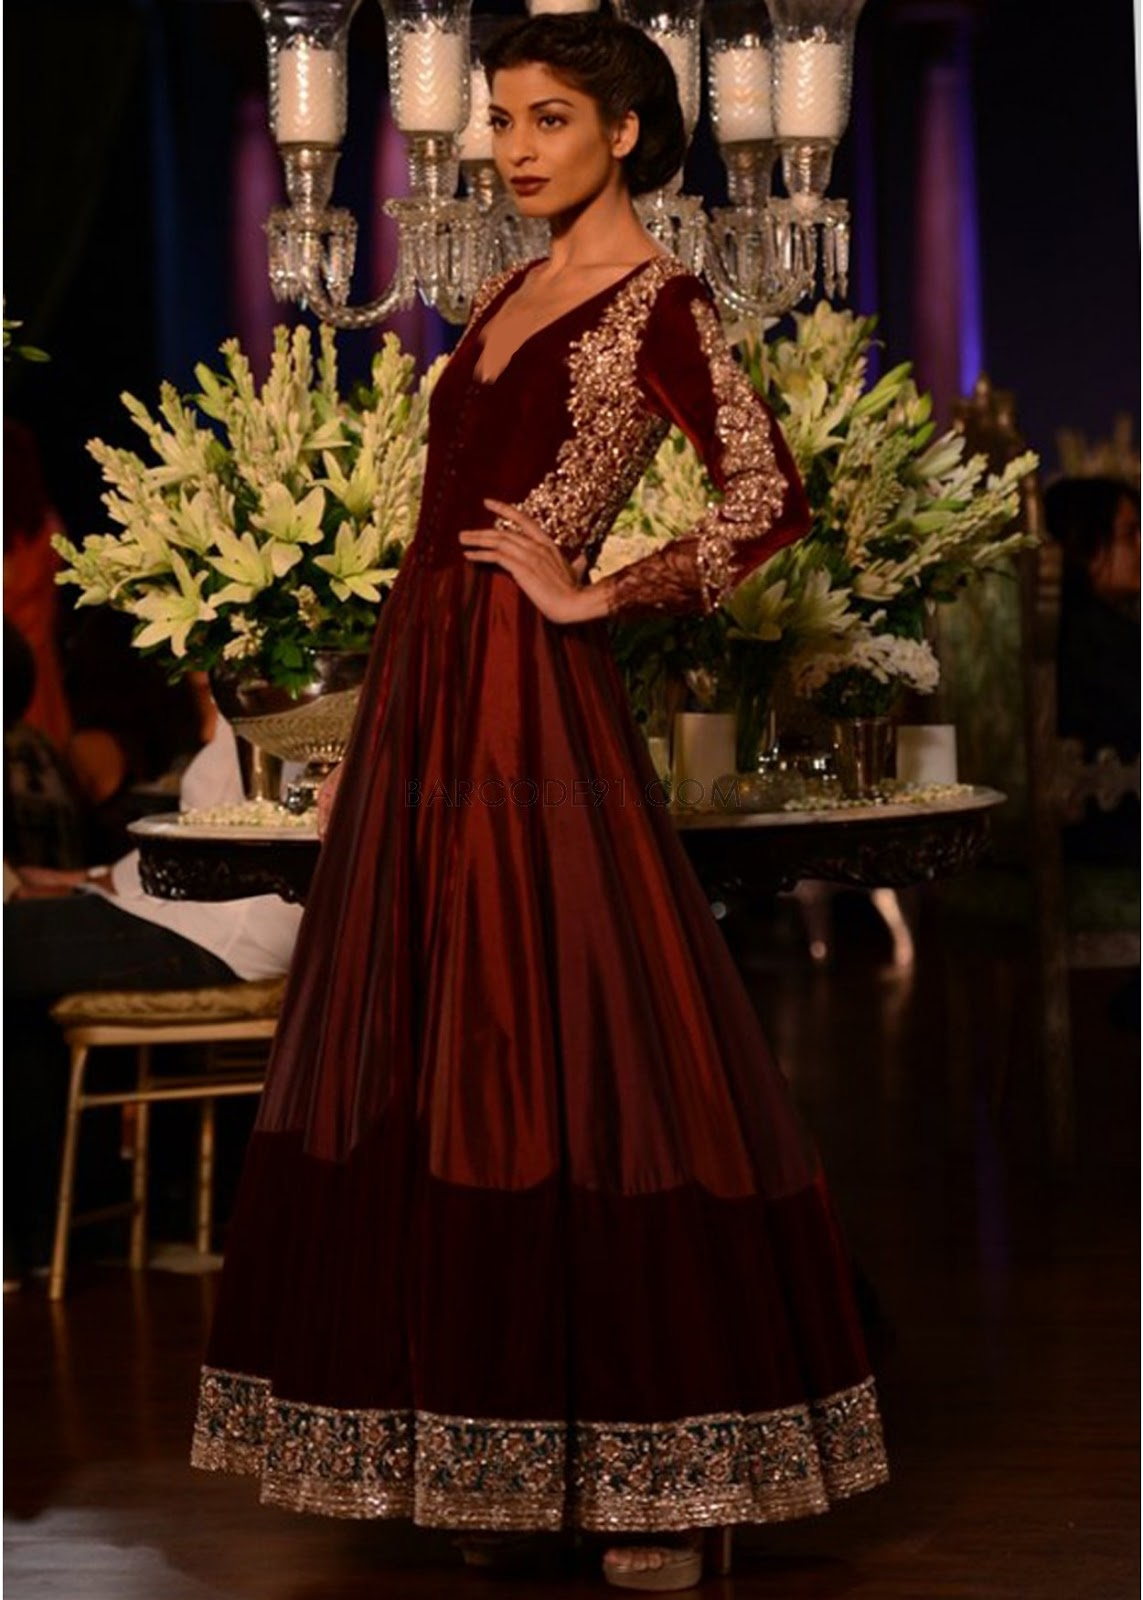 Manish Malhotra Collection at PCJ Delhi Couture Week 2013